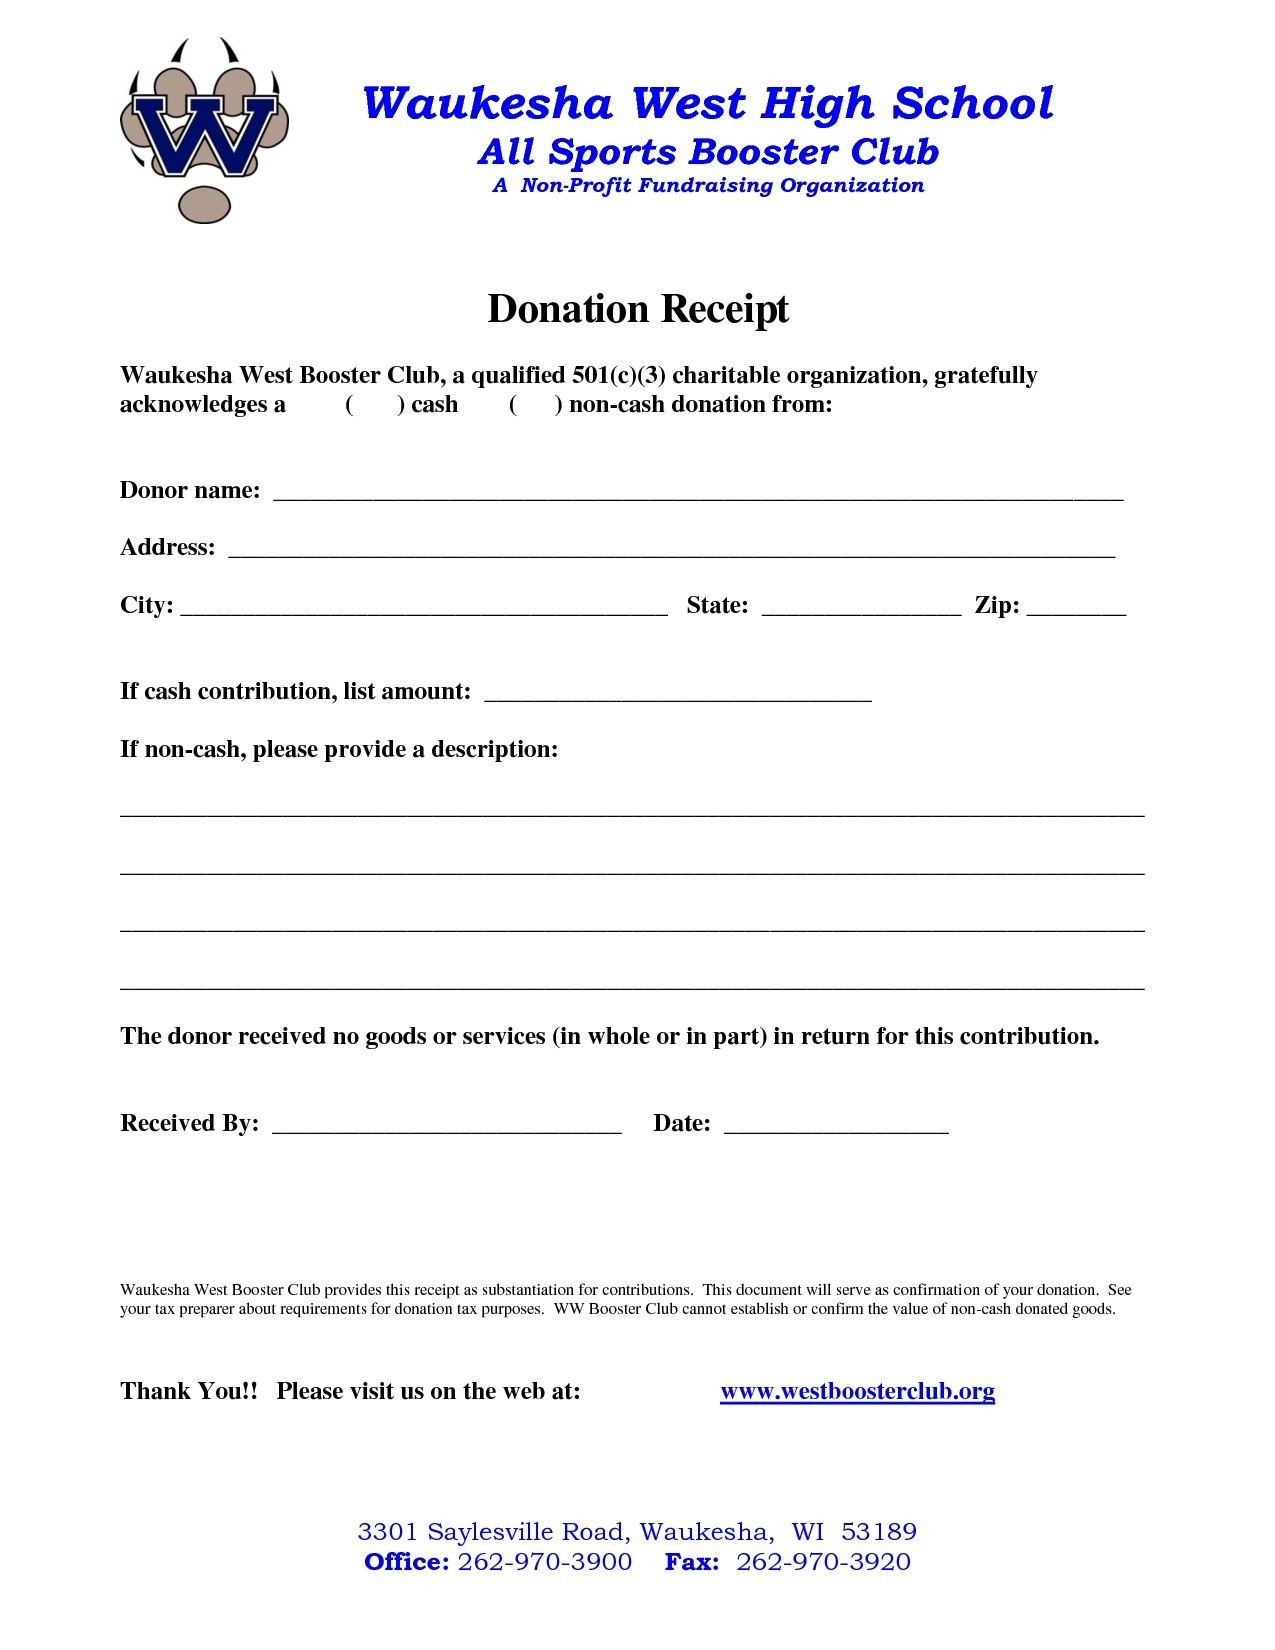 Charitable Donation Receipt Letter Template - Sample Donation Letter for Non Profit Unique Best Donation Receipt